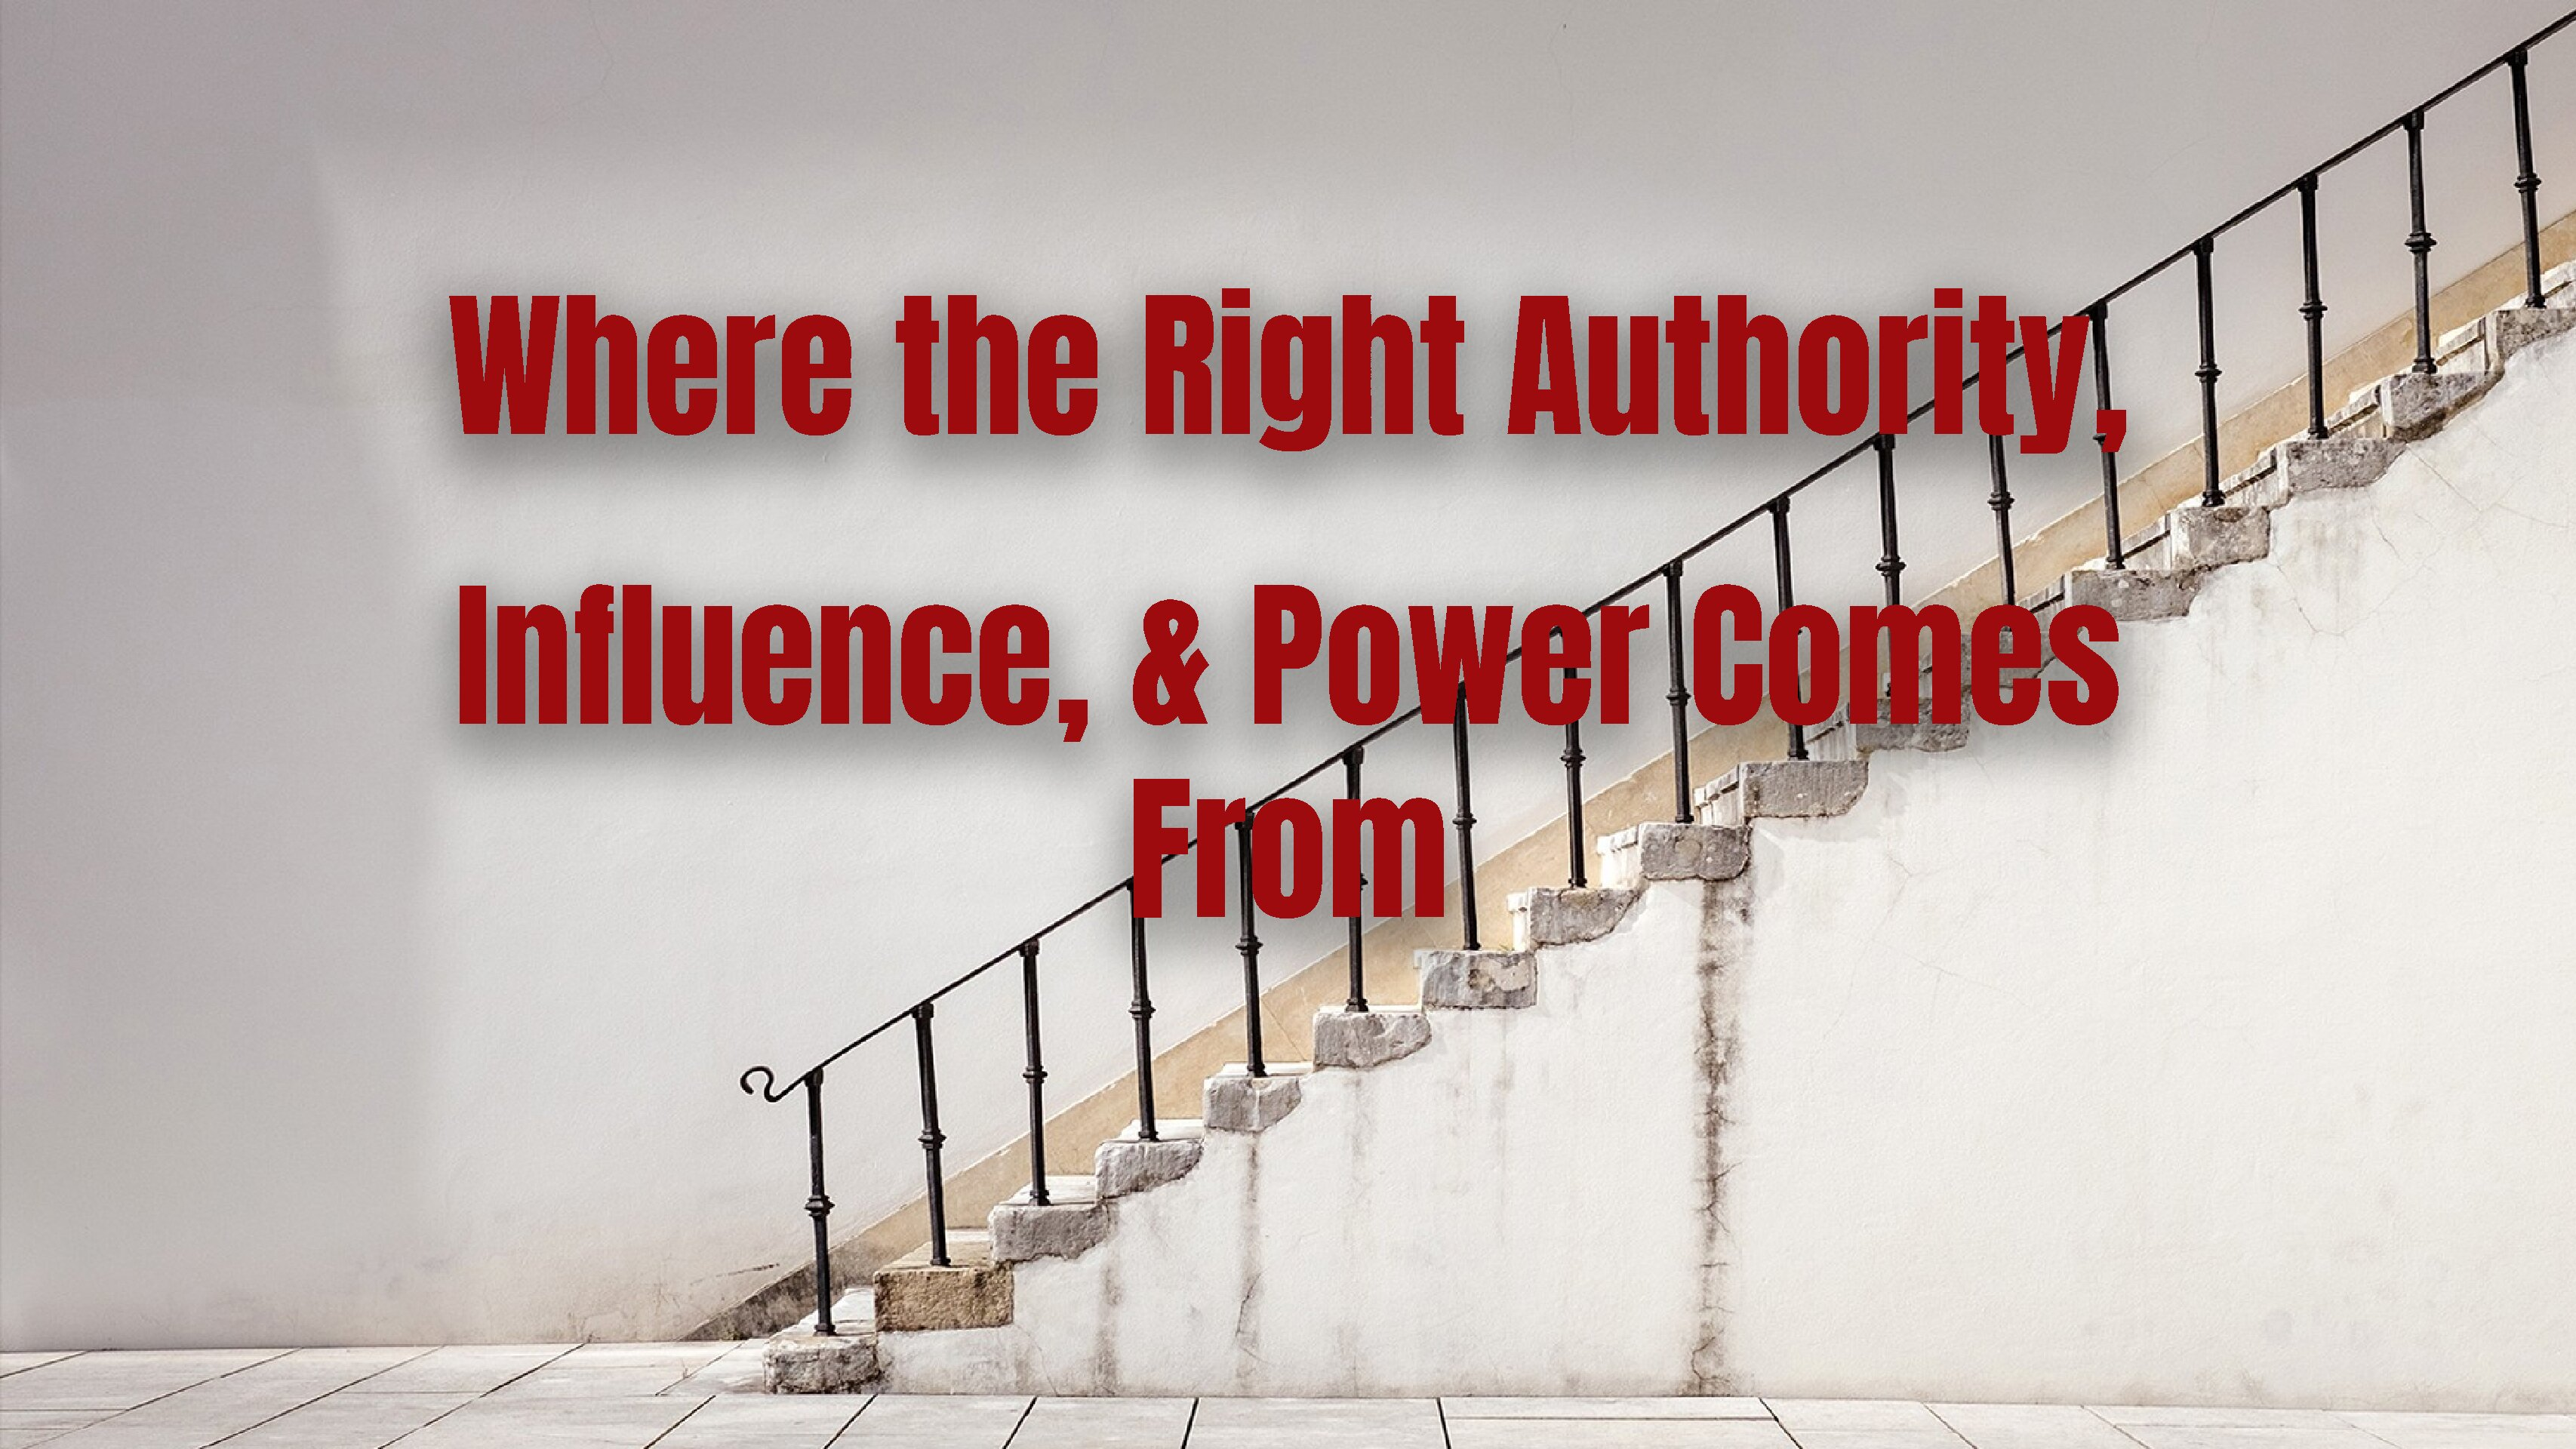 Where the Right Authority, Influence, and Power Comes From